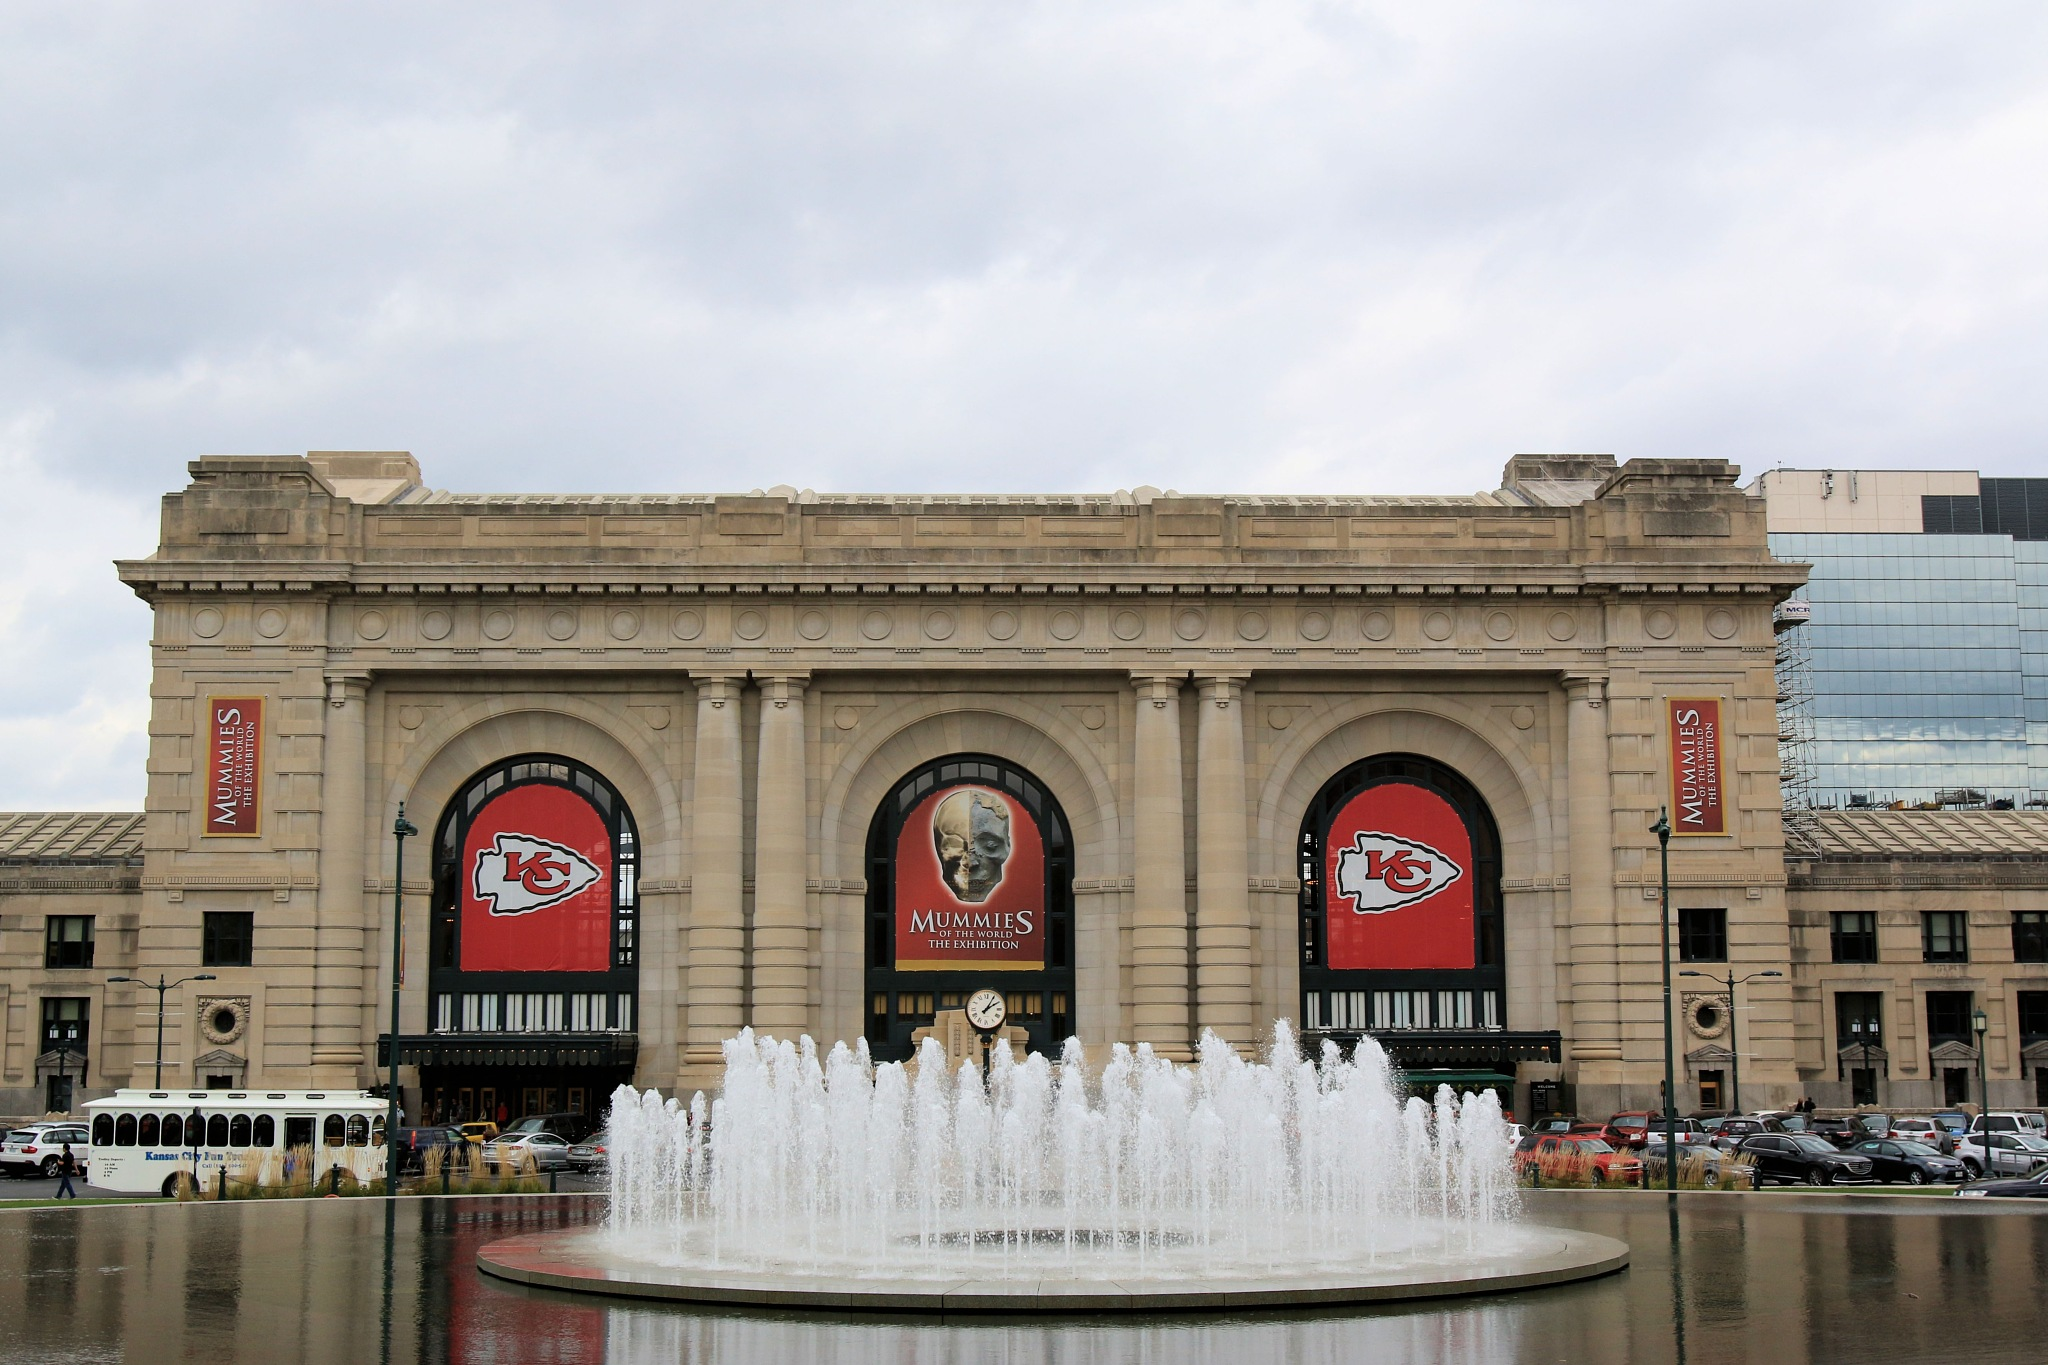 Union Station by Michael McCasland